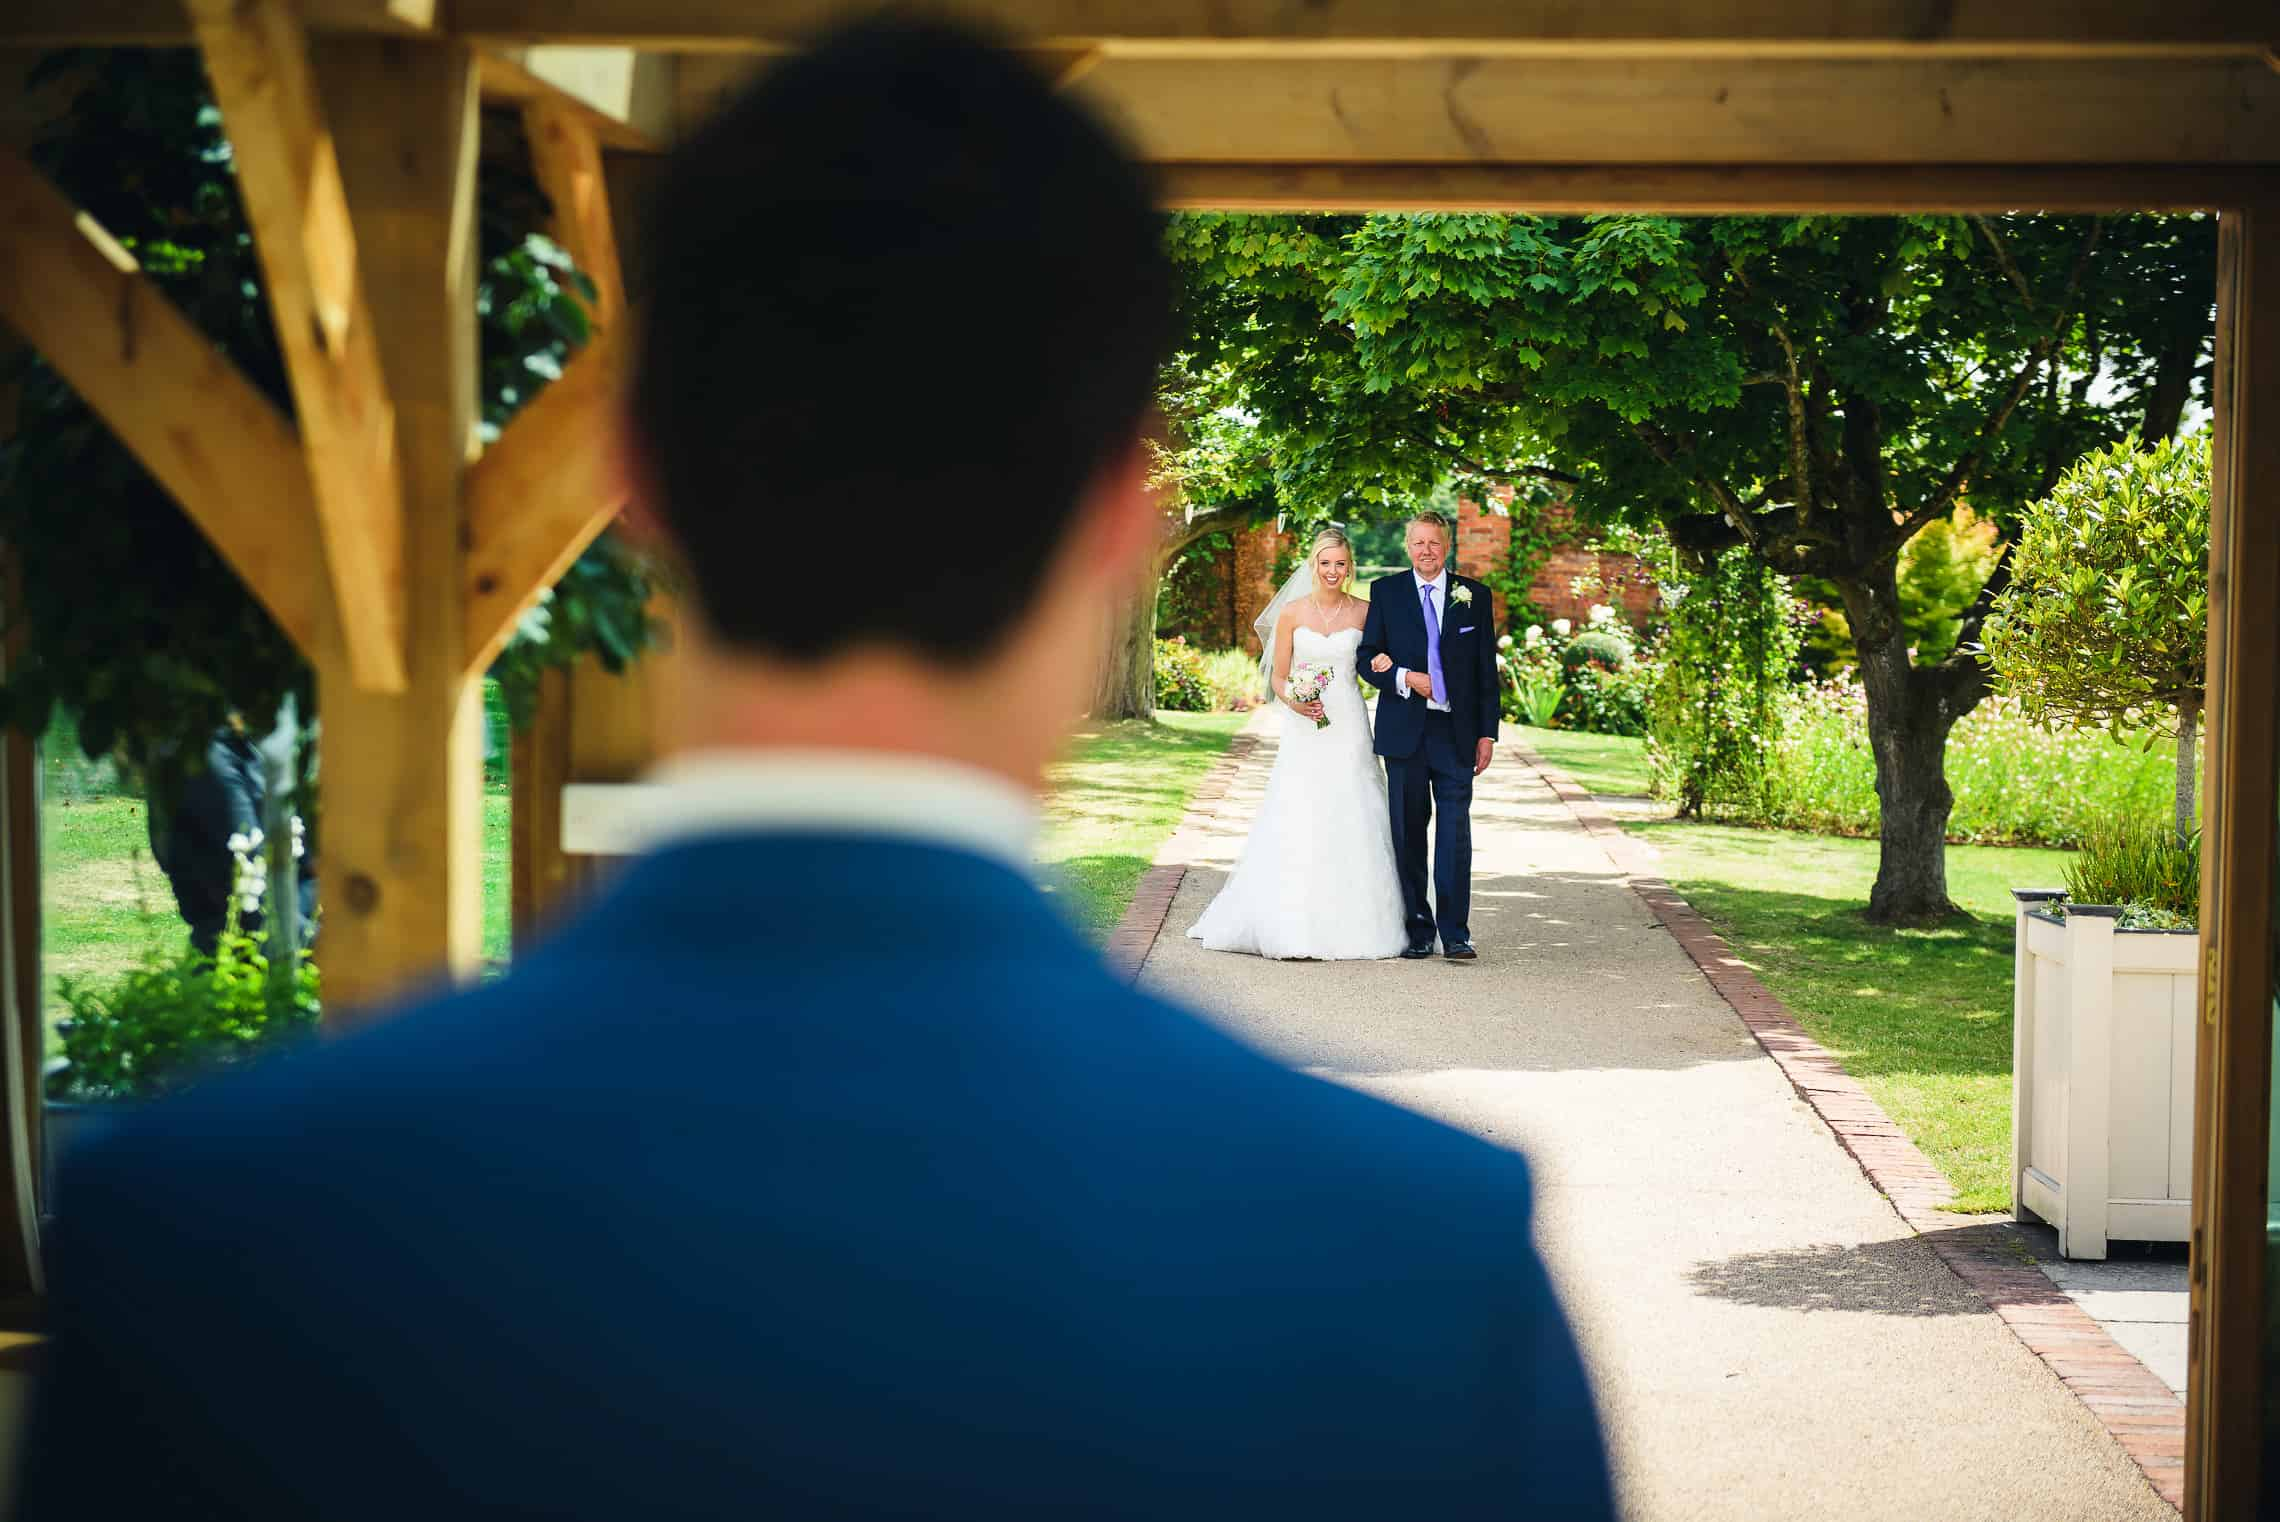 gaynes_park_wedding_lm_justin_bailey_photography_005